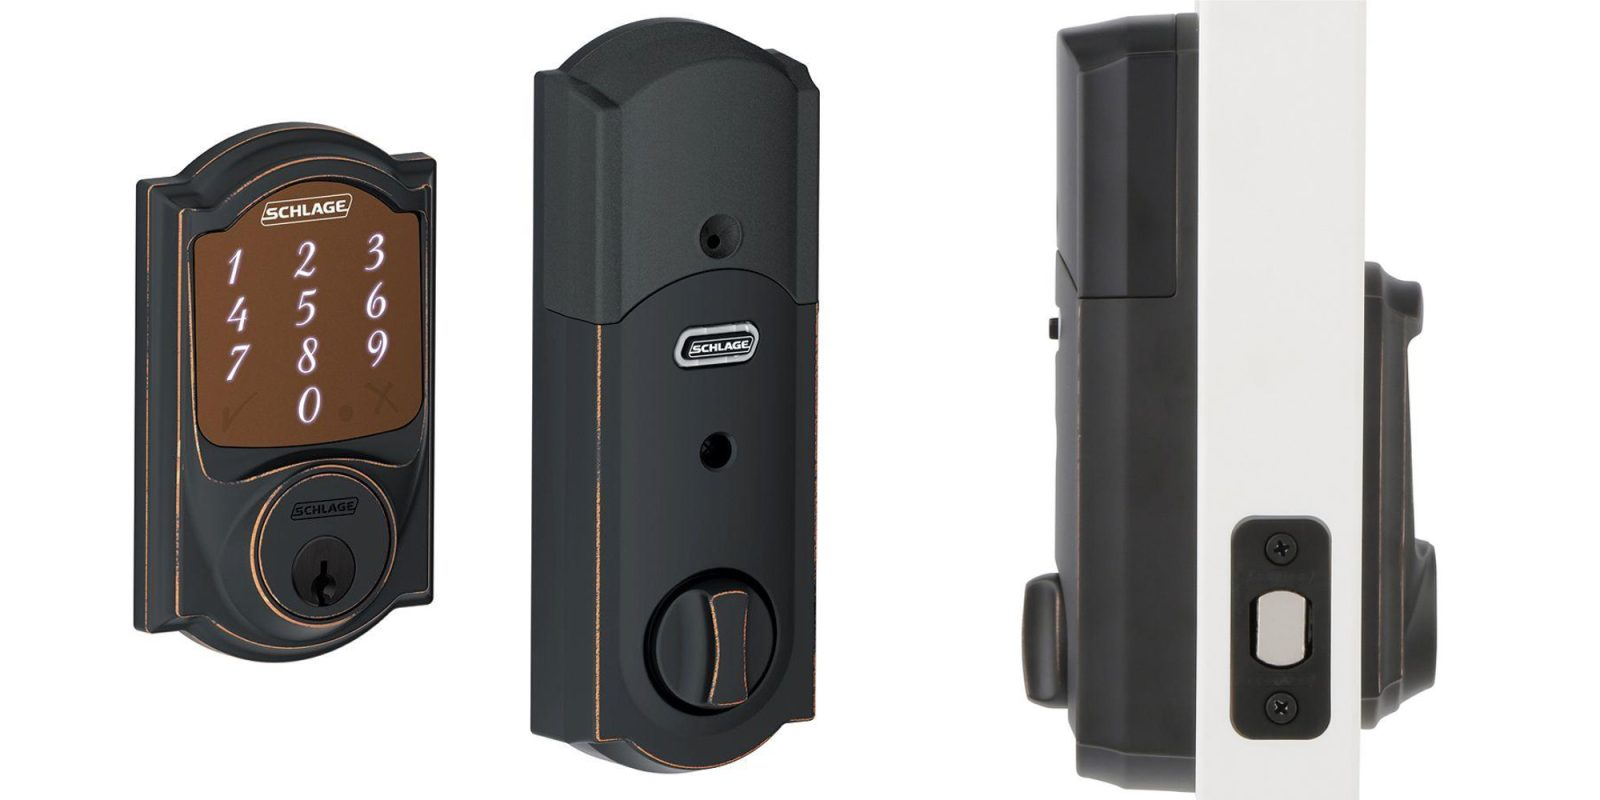 Schlage's Siri-activated Sense Deadbolt comes to your HomeKit setup at $164.50